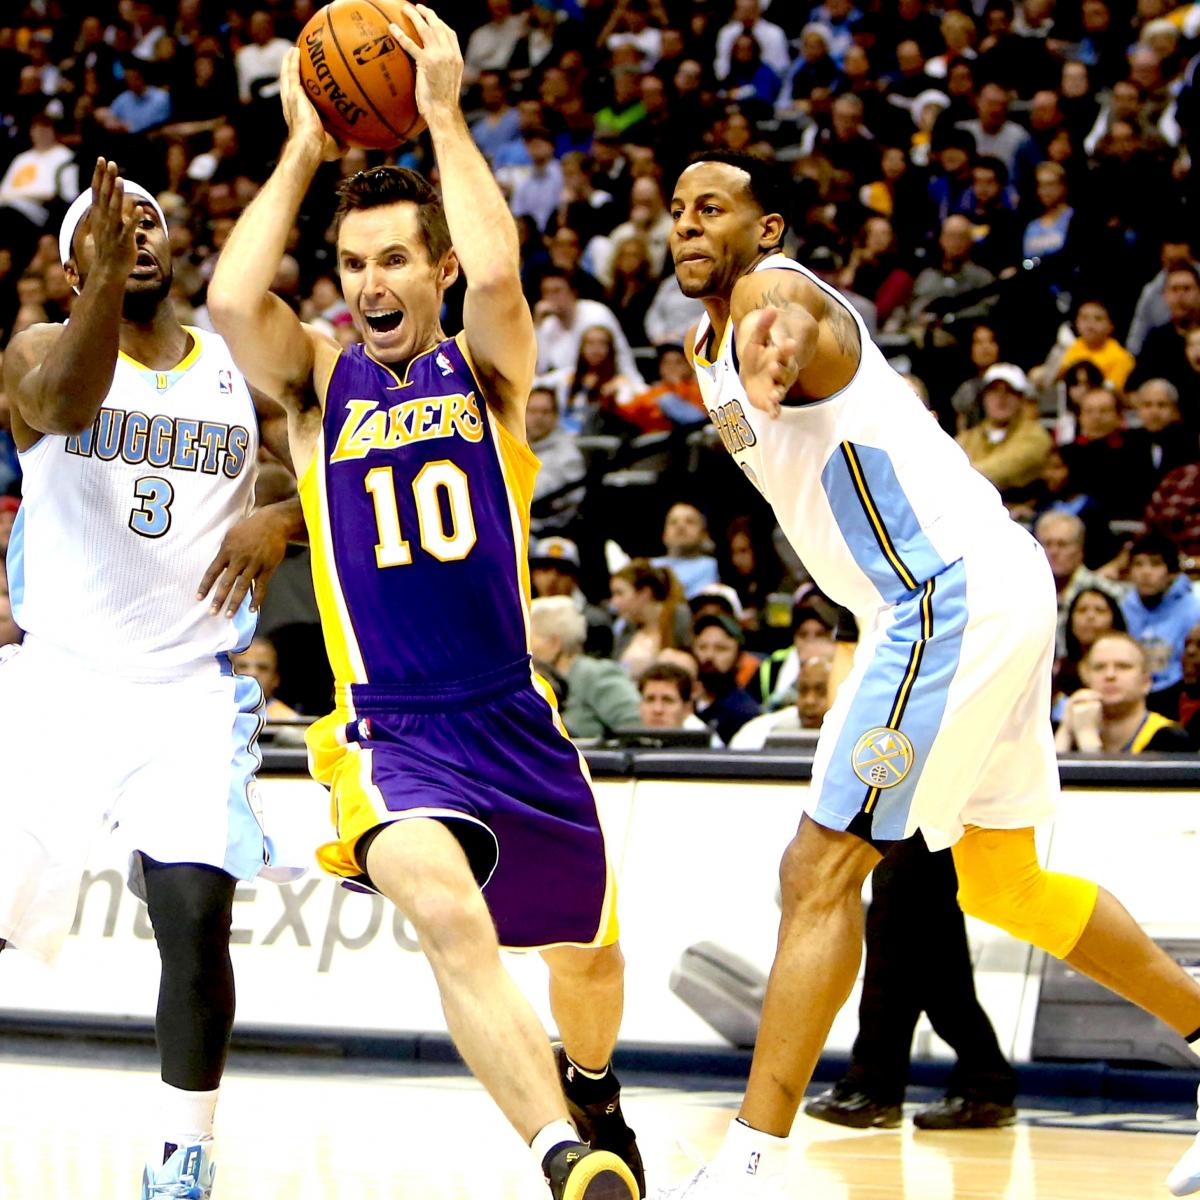 Los Angeles Lakers Vs. Denver Nuggets: Live Score, Results